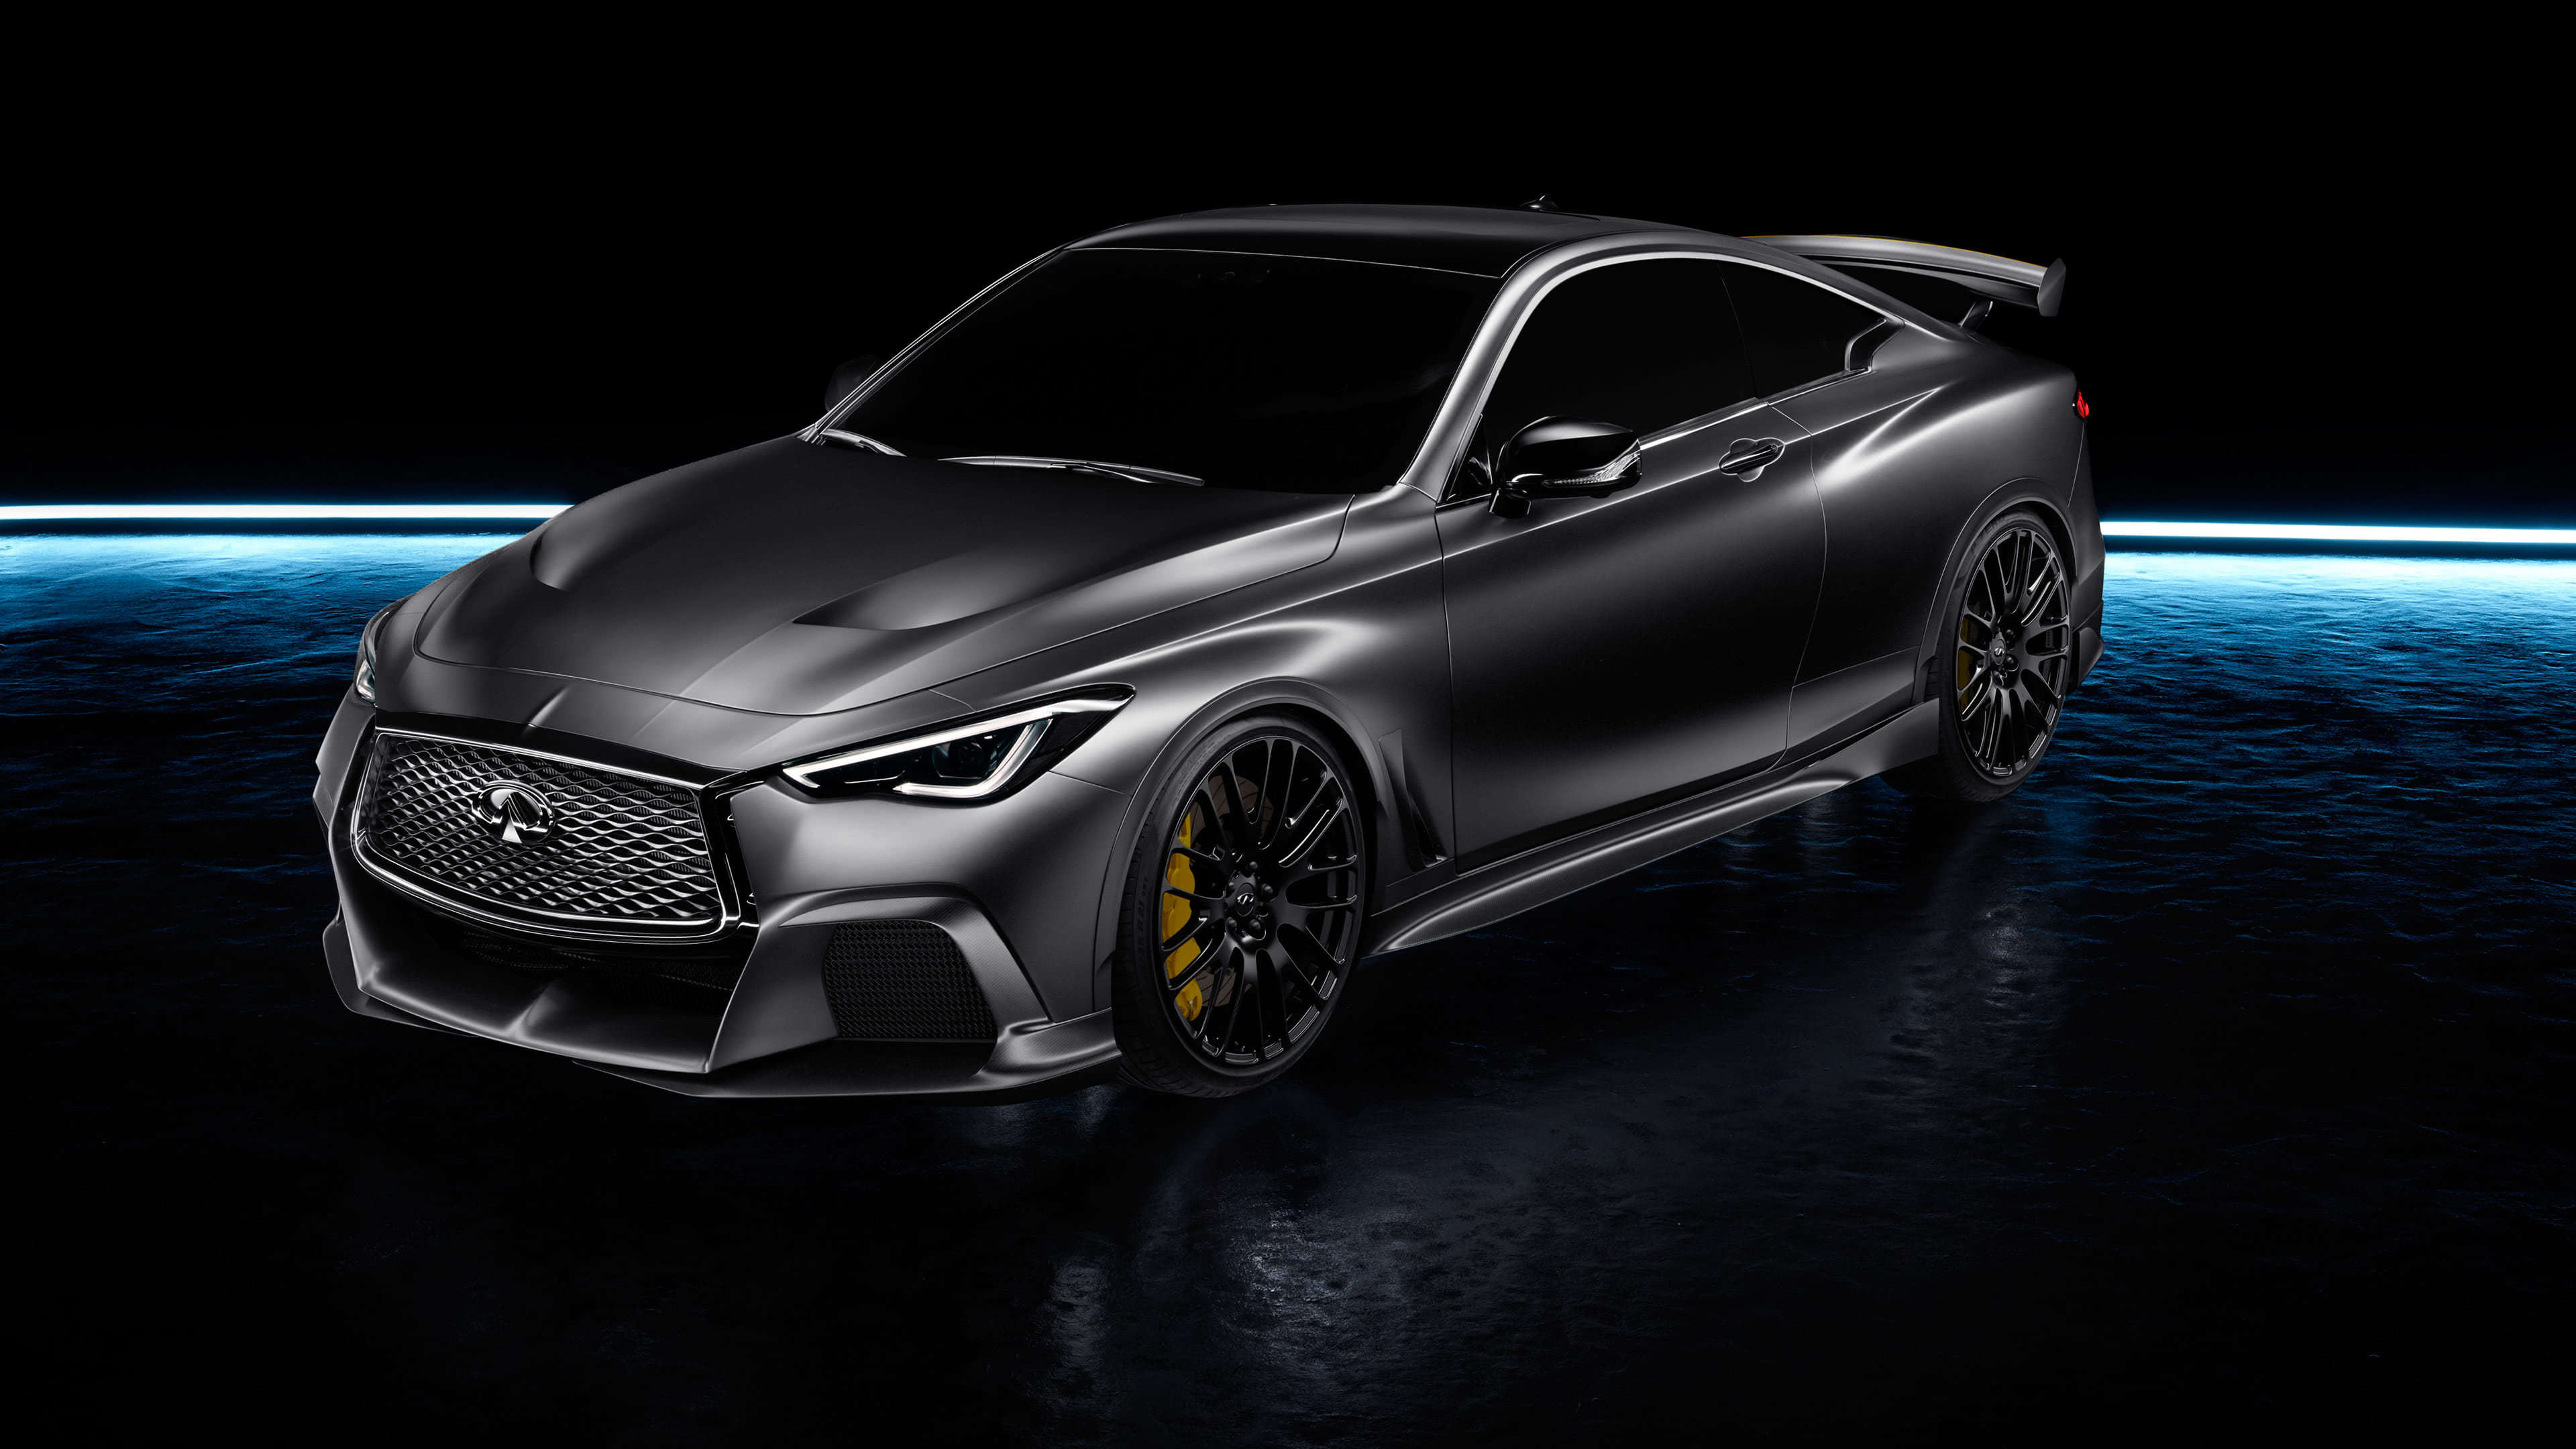 infiniti q60 project black uhd 4k wallpaper